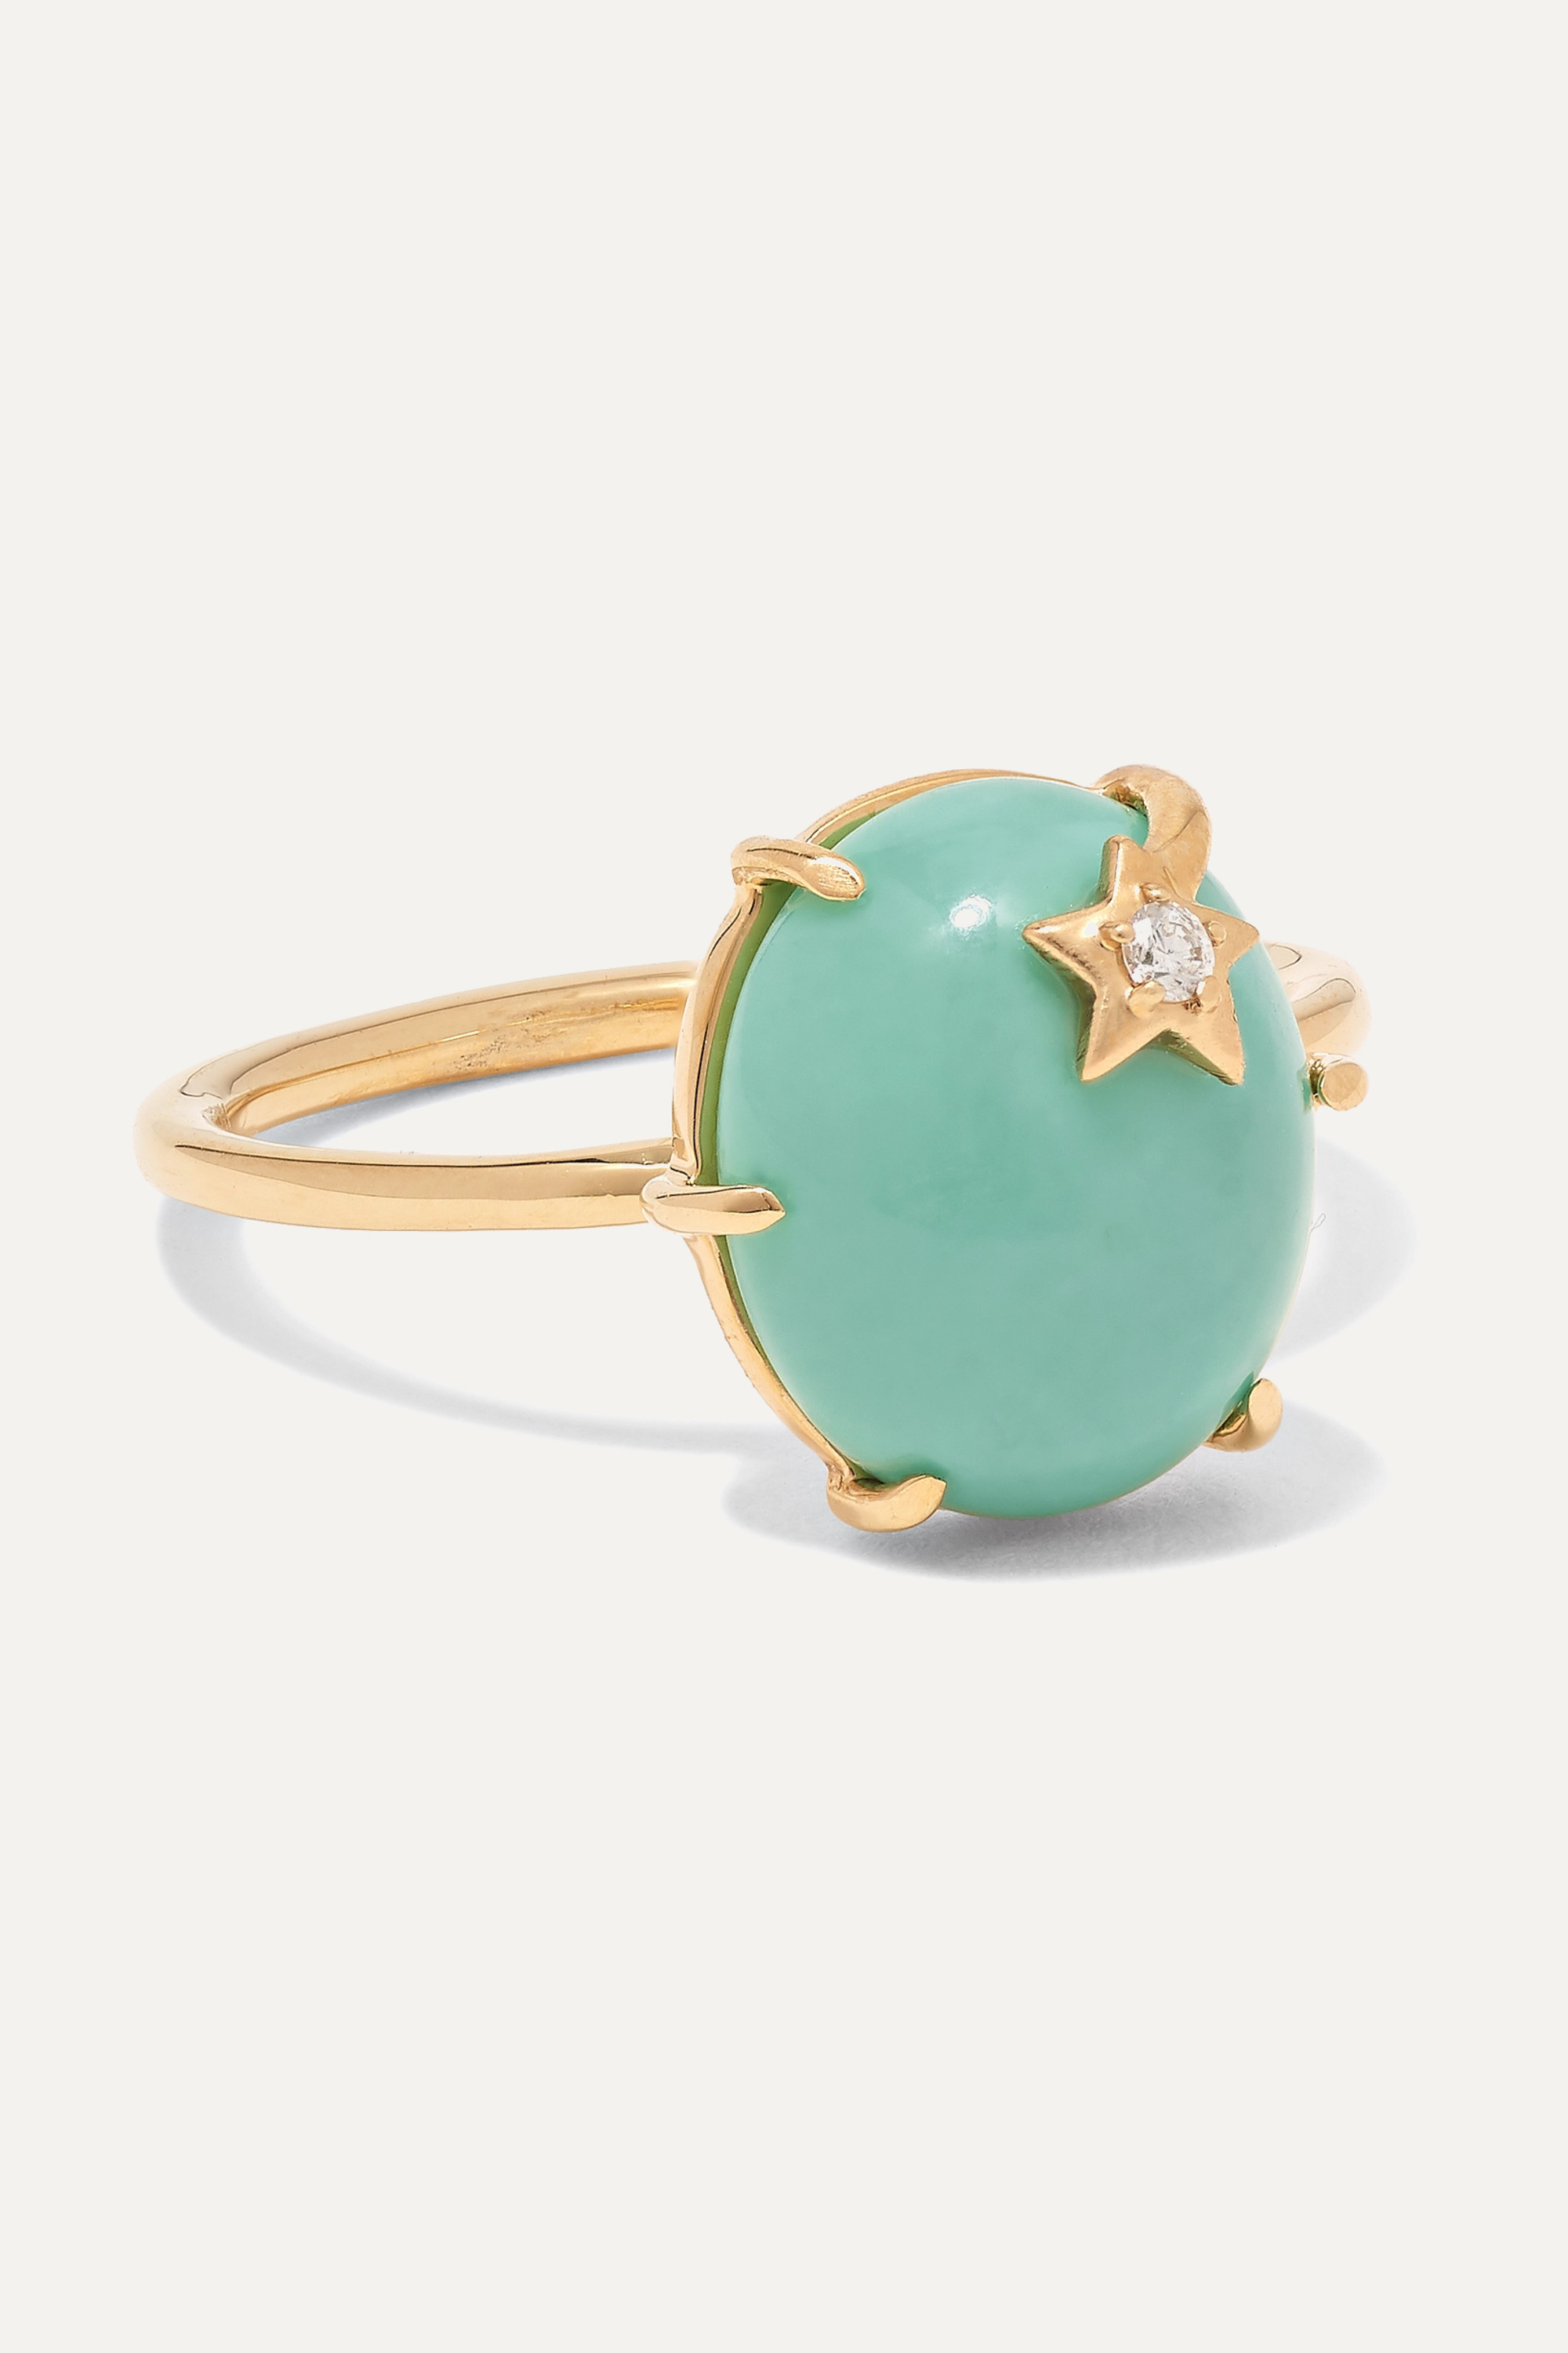 Andrea Fohrman 18-karat gold, turquoise and diamond ring